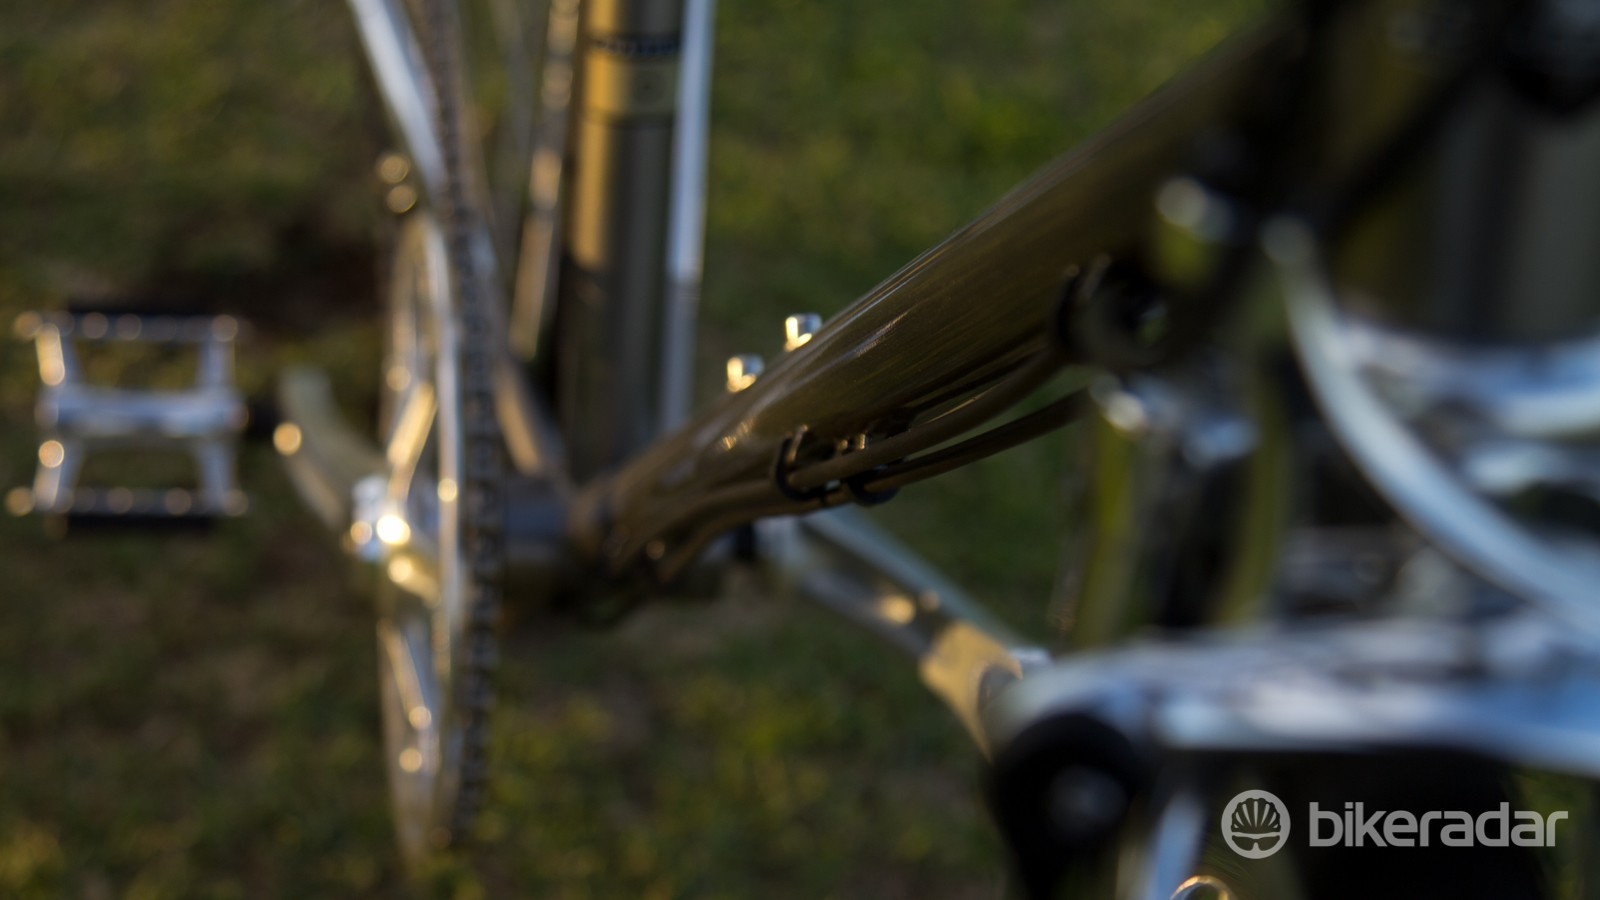 We love the bike's aesthetic… except for those cable guides. Staggering them doesn't look nice